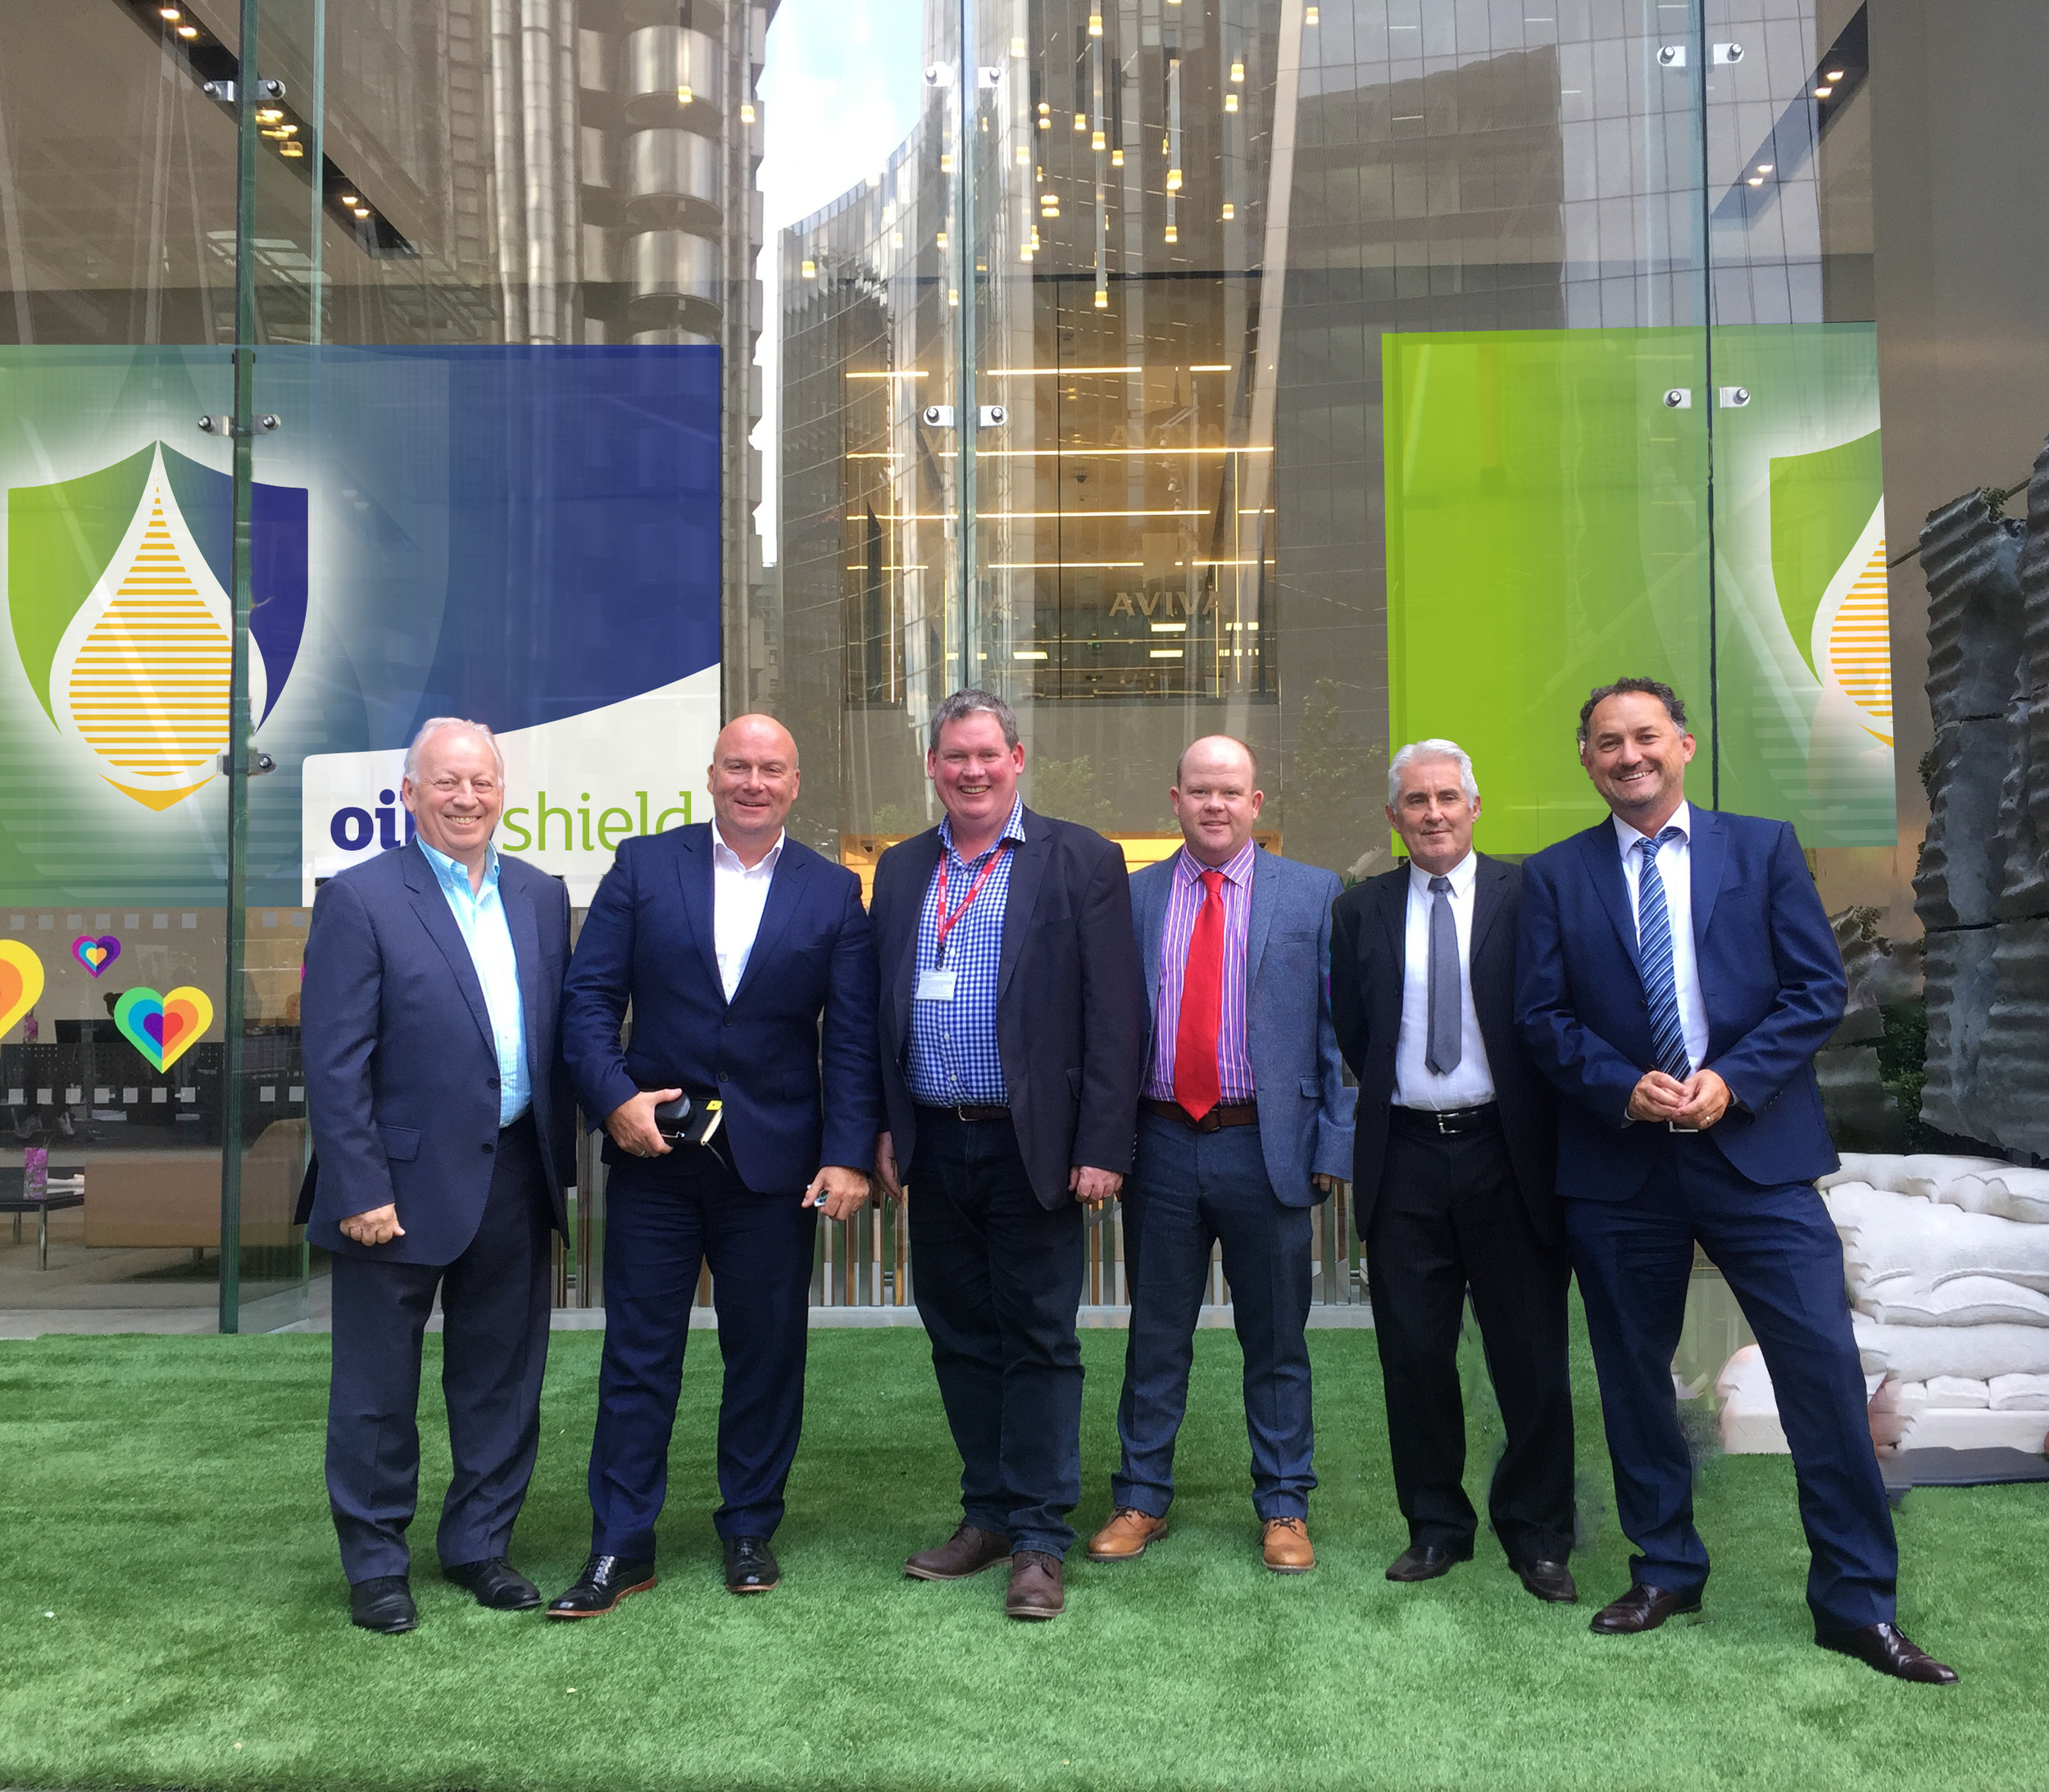 The Oilshield Team outside the Aviva St Helen's Office, London  (left to right) Colin Duxberry (SIA), Jonathan Smith (Aviva), Stewart Ower (Compass Environmental), Dave Gardiner (Evergreen), Chris Browne (SIA), Matt Lamb (Aviva)